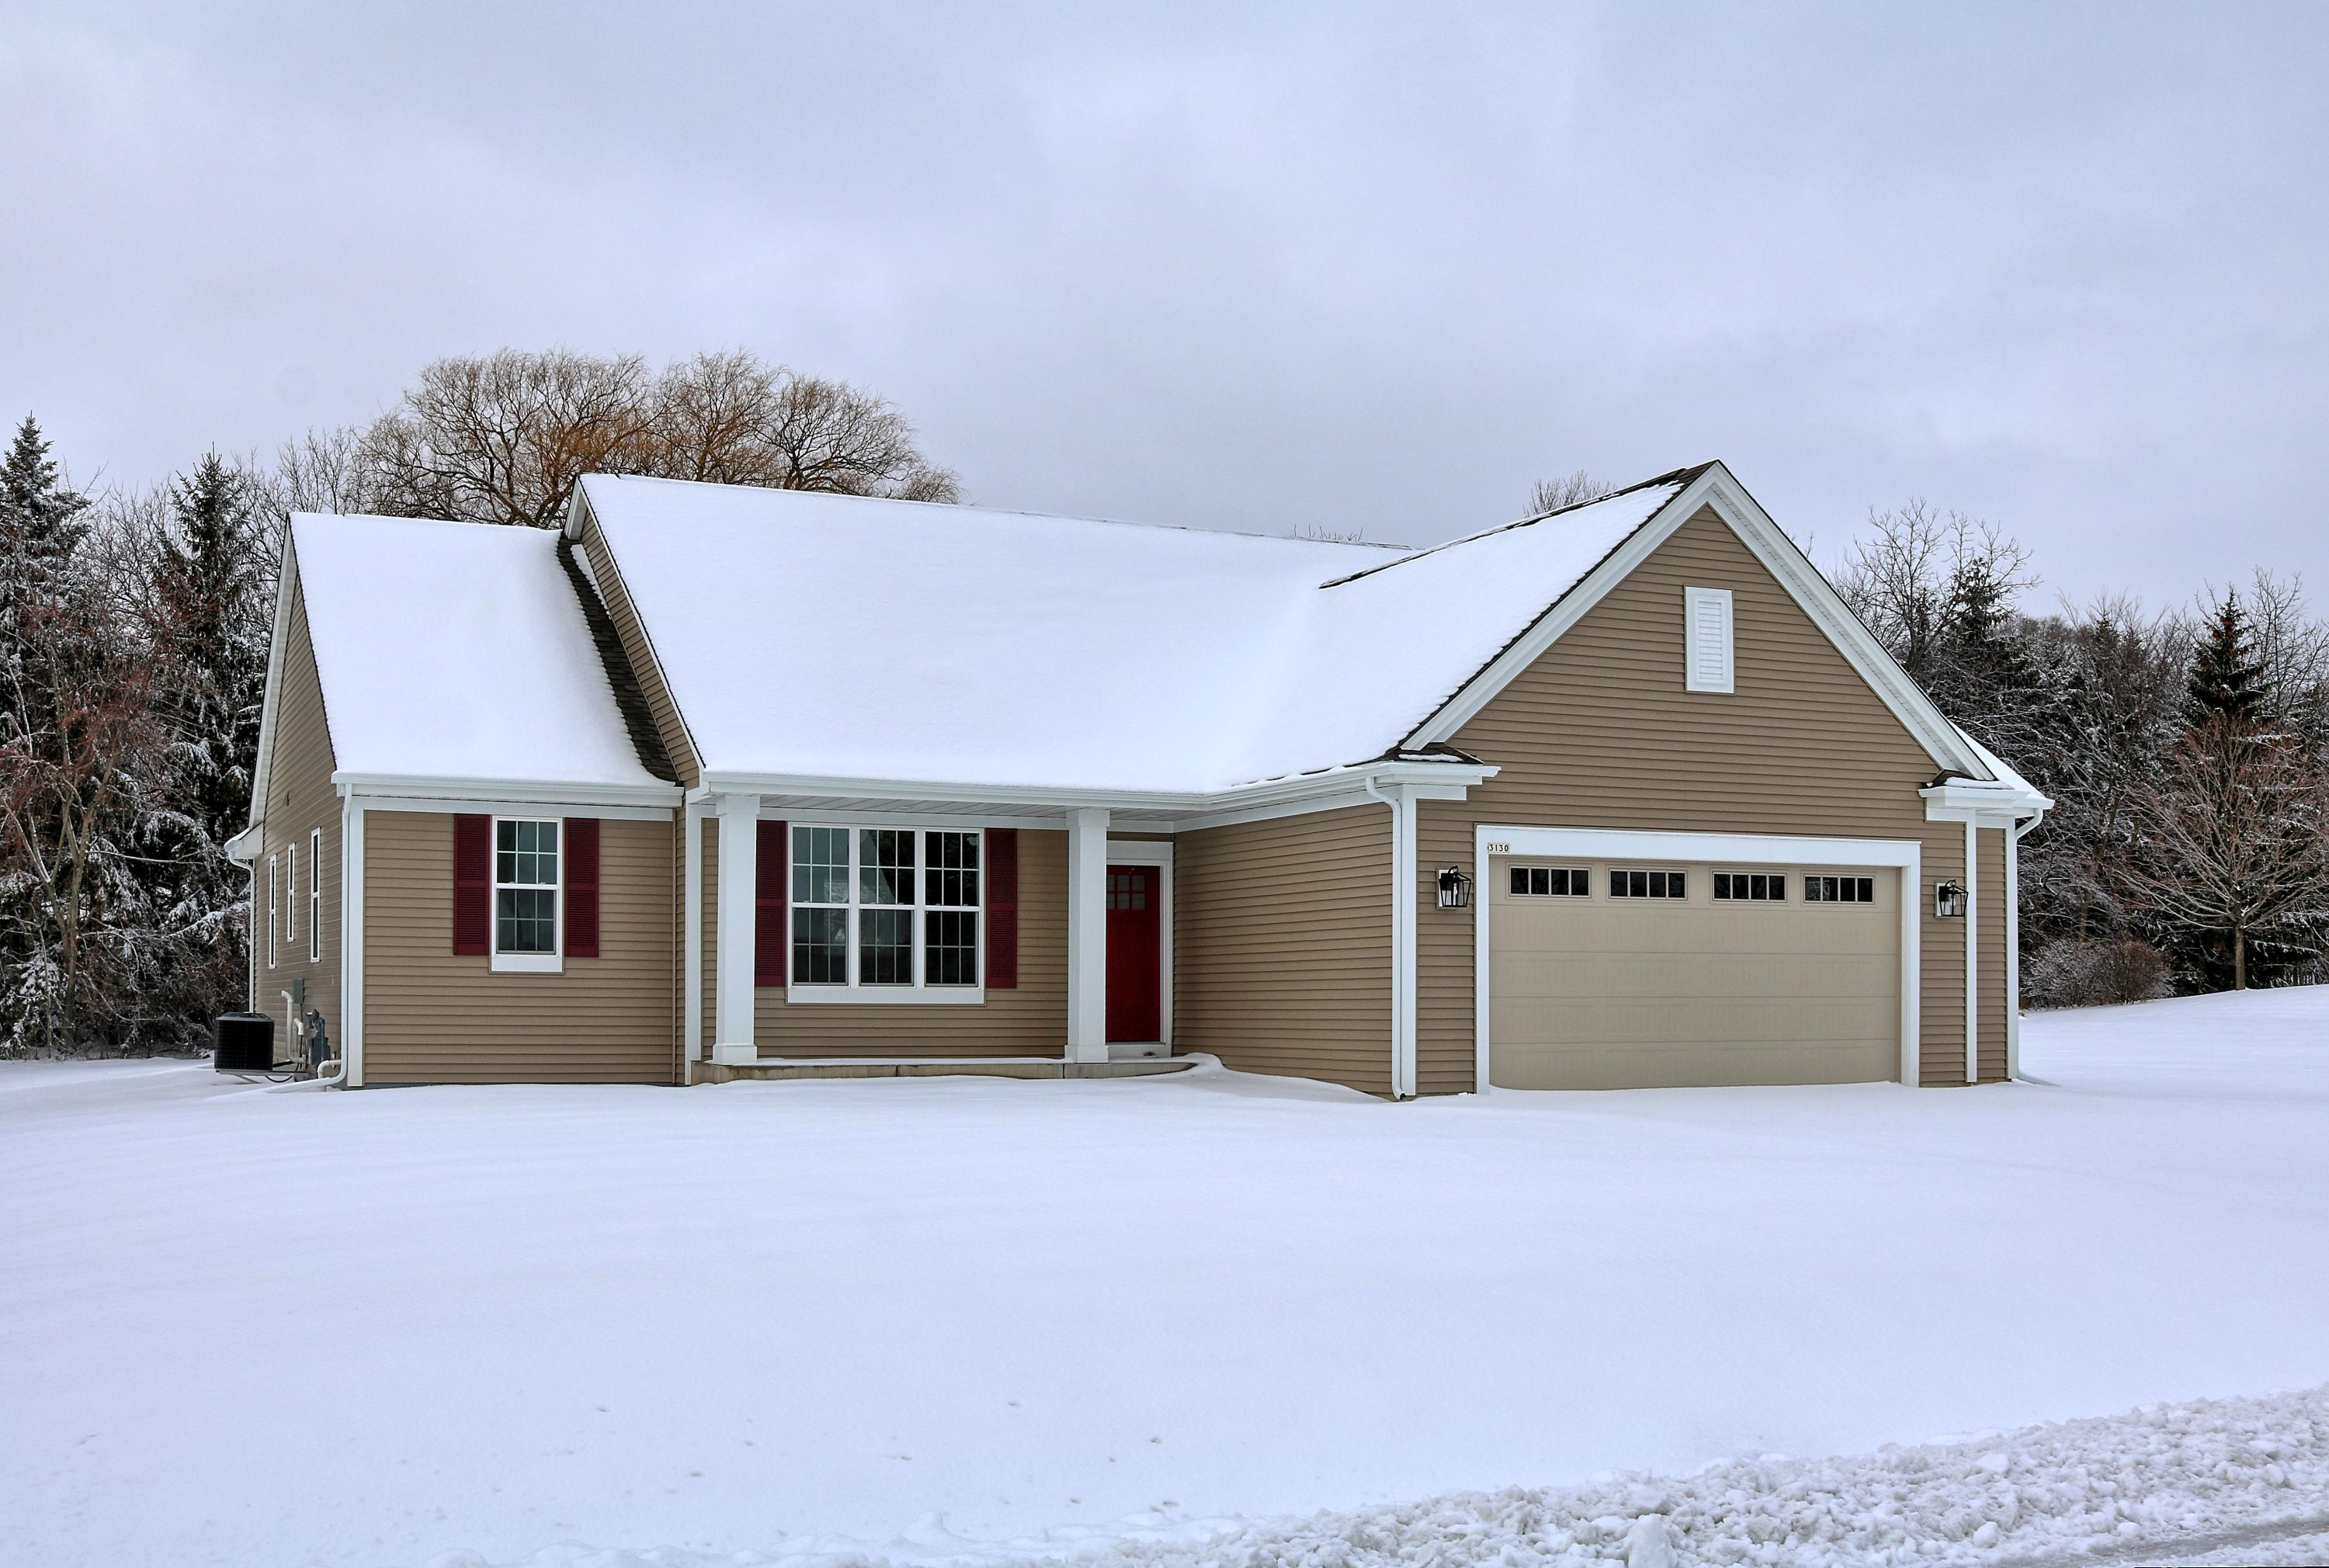 3130 Pritchard Dr, Mount Pleasant, Wisconsin 53406, 3 Bedrooms Bedrooms, ,2 BathroomsBathrooms,Single-family,For Sale,Pritchard Dr,1722819